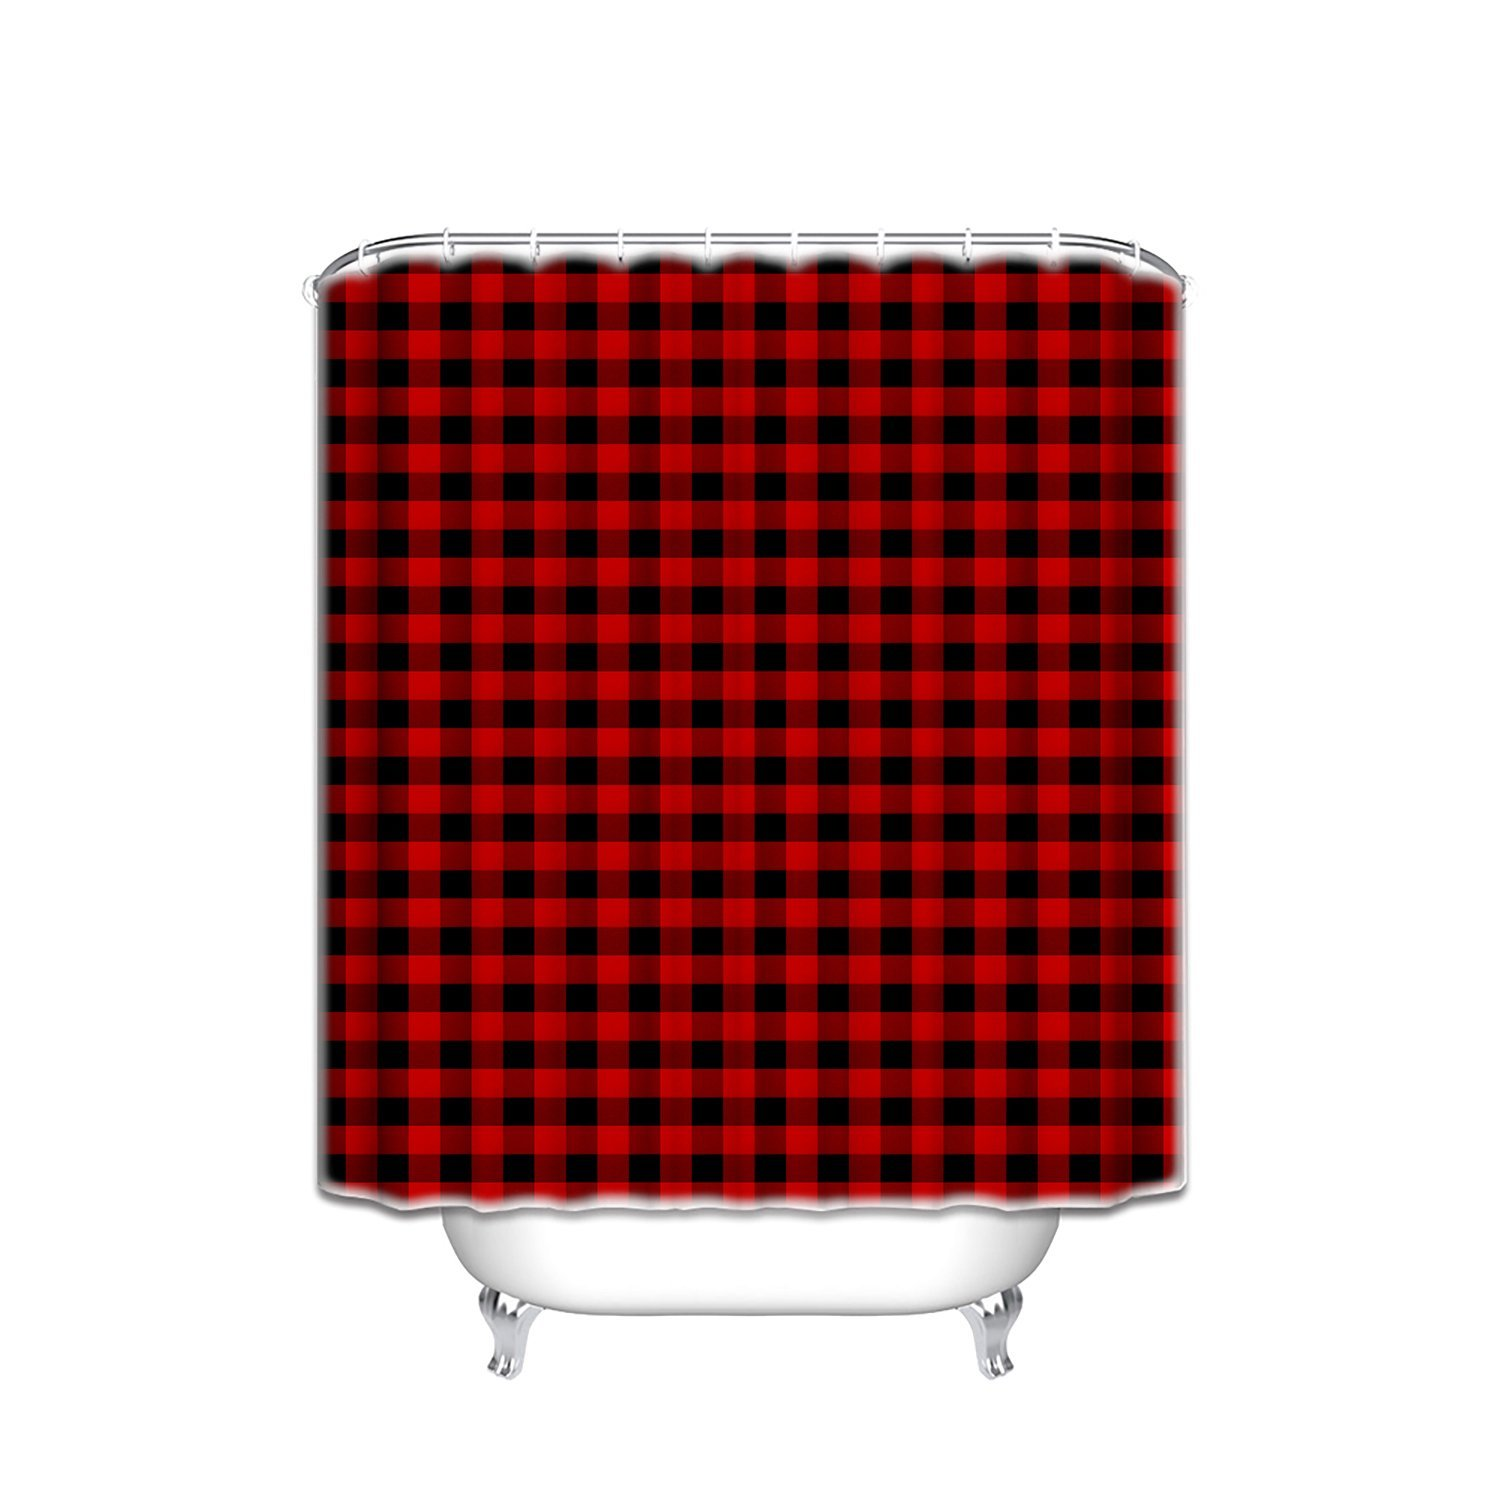 Memory Home Customize Waterproof Rustic Red Black Buffalo Check Plaid  Pattern Print Polyester Fabric Bathroom Shower